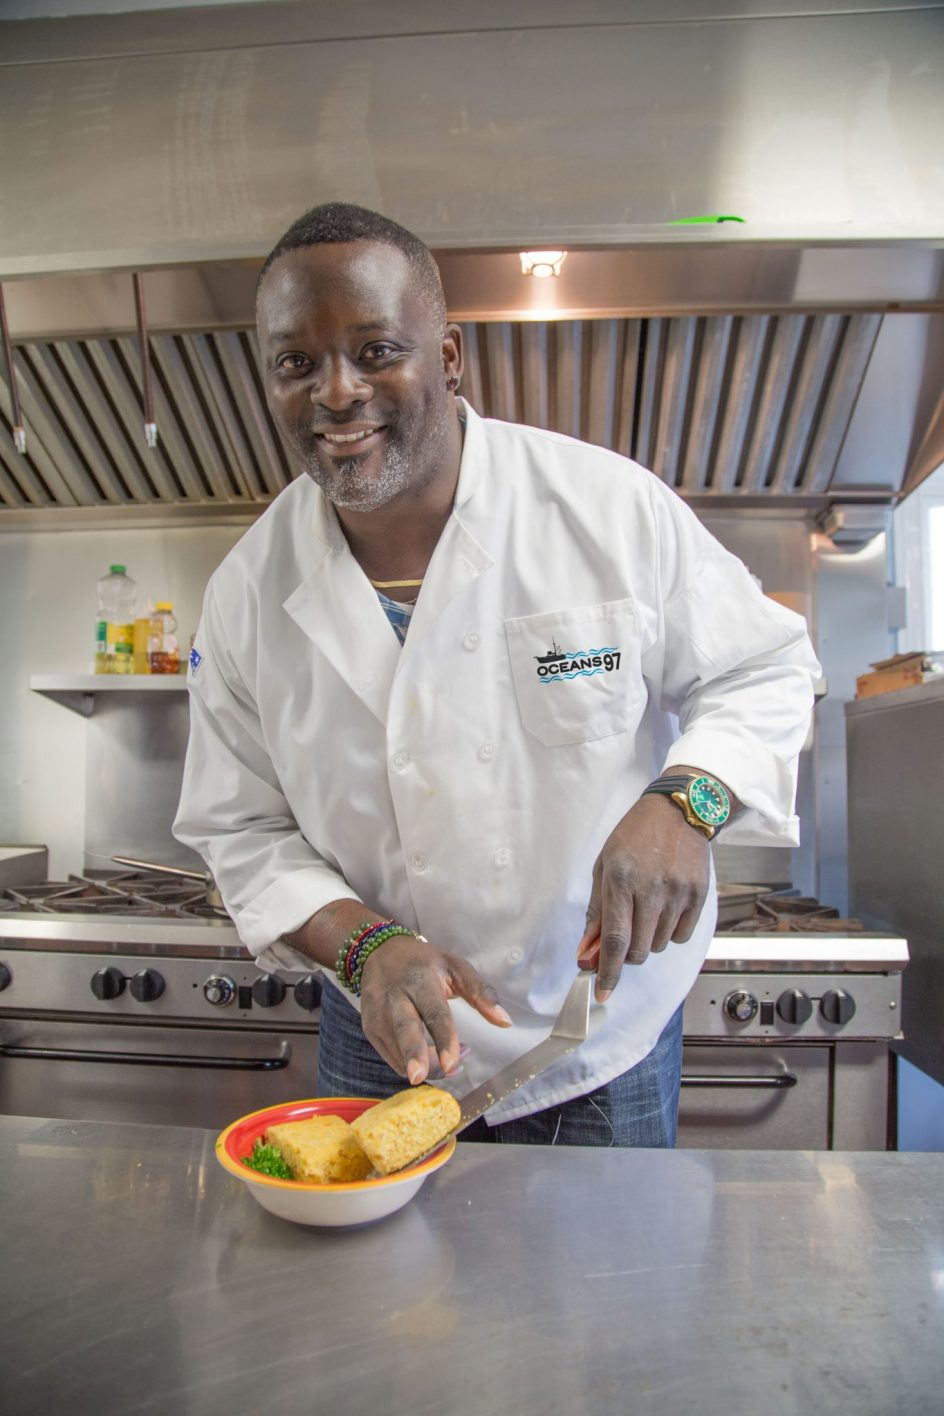 Former NFL Star Jarvis Green Tackles Culinary Industry with Ocean 97 Brand